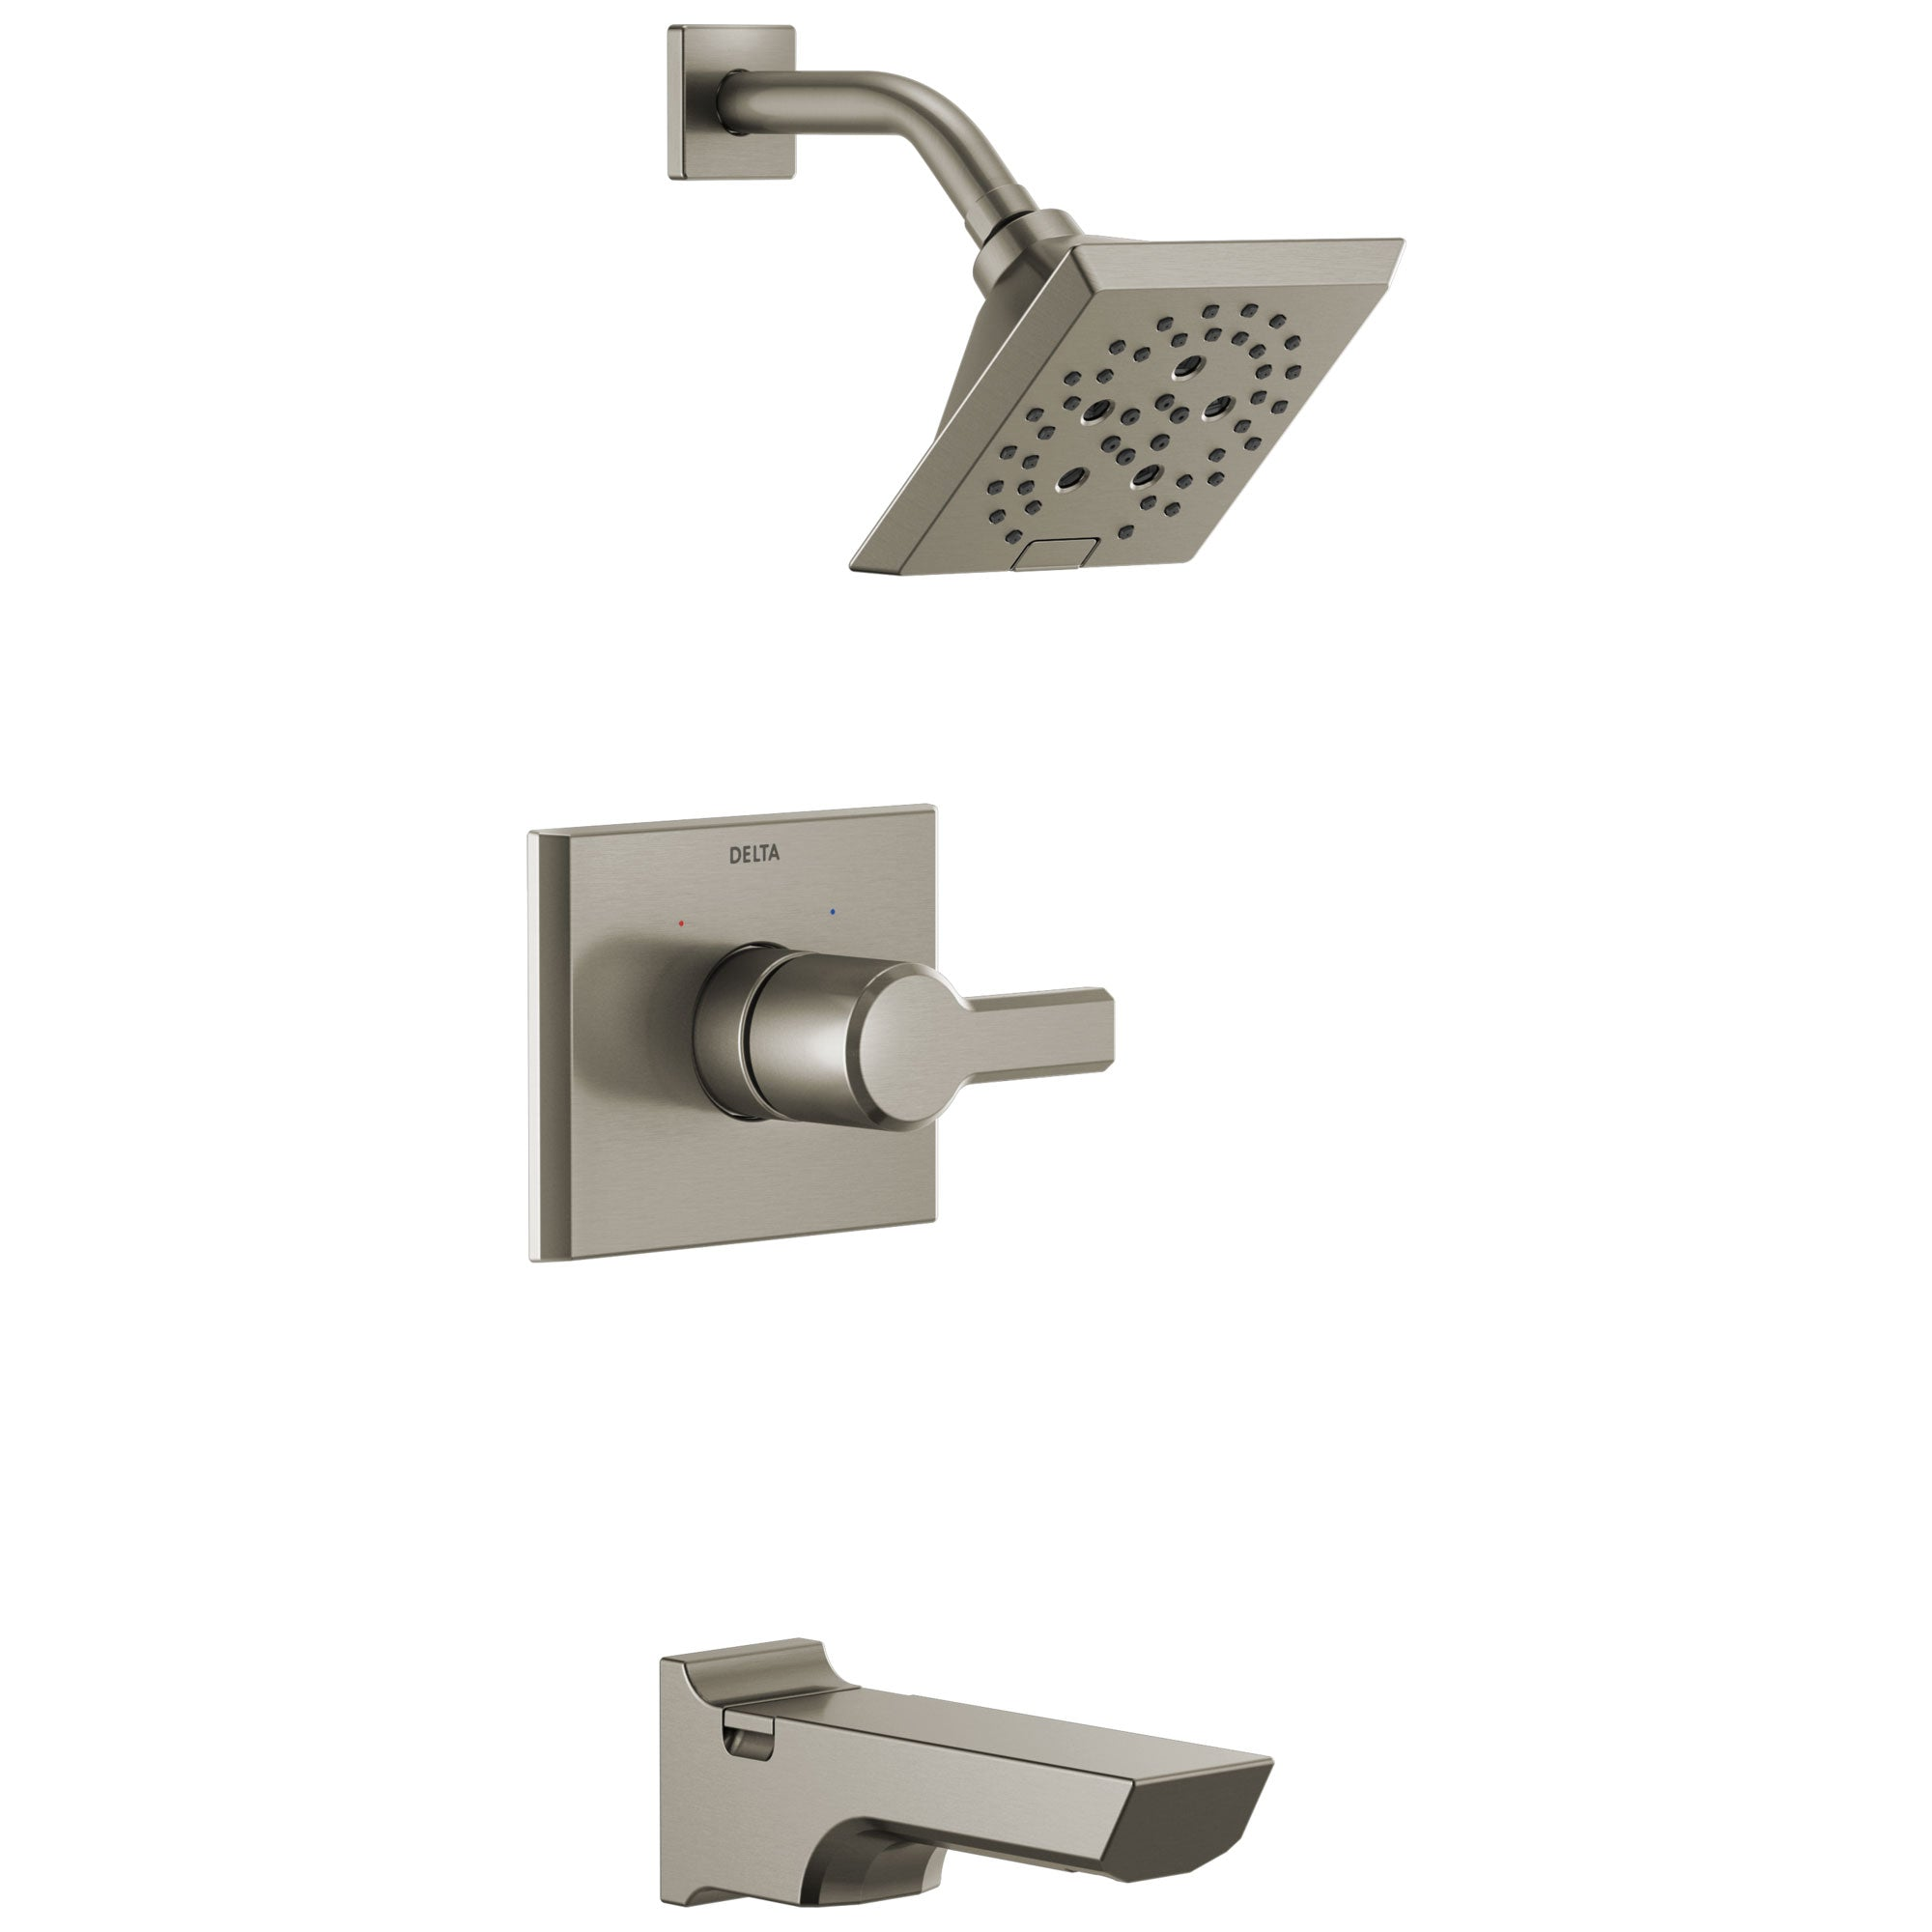 Delta Pivotal Stainless Steel Finish Monitor 14 Series H2Okinetic Tub and Shower Combination Faucet Trim Kit (Requires Valve) DT14499SS